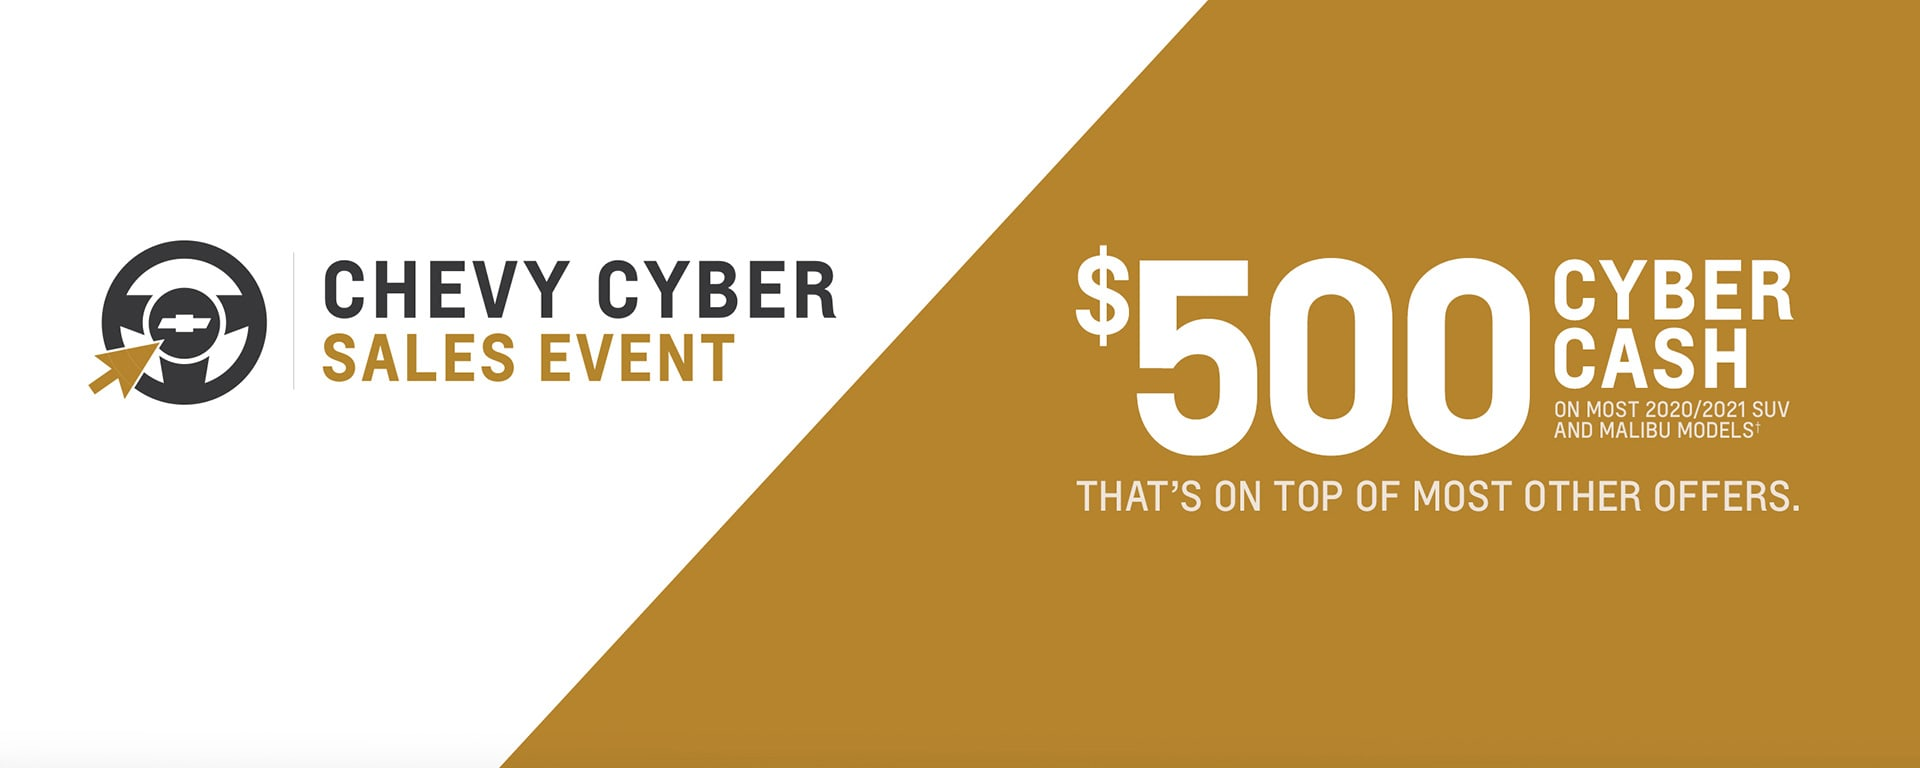 $500 Cash back Chevy Cyber Sales Event